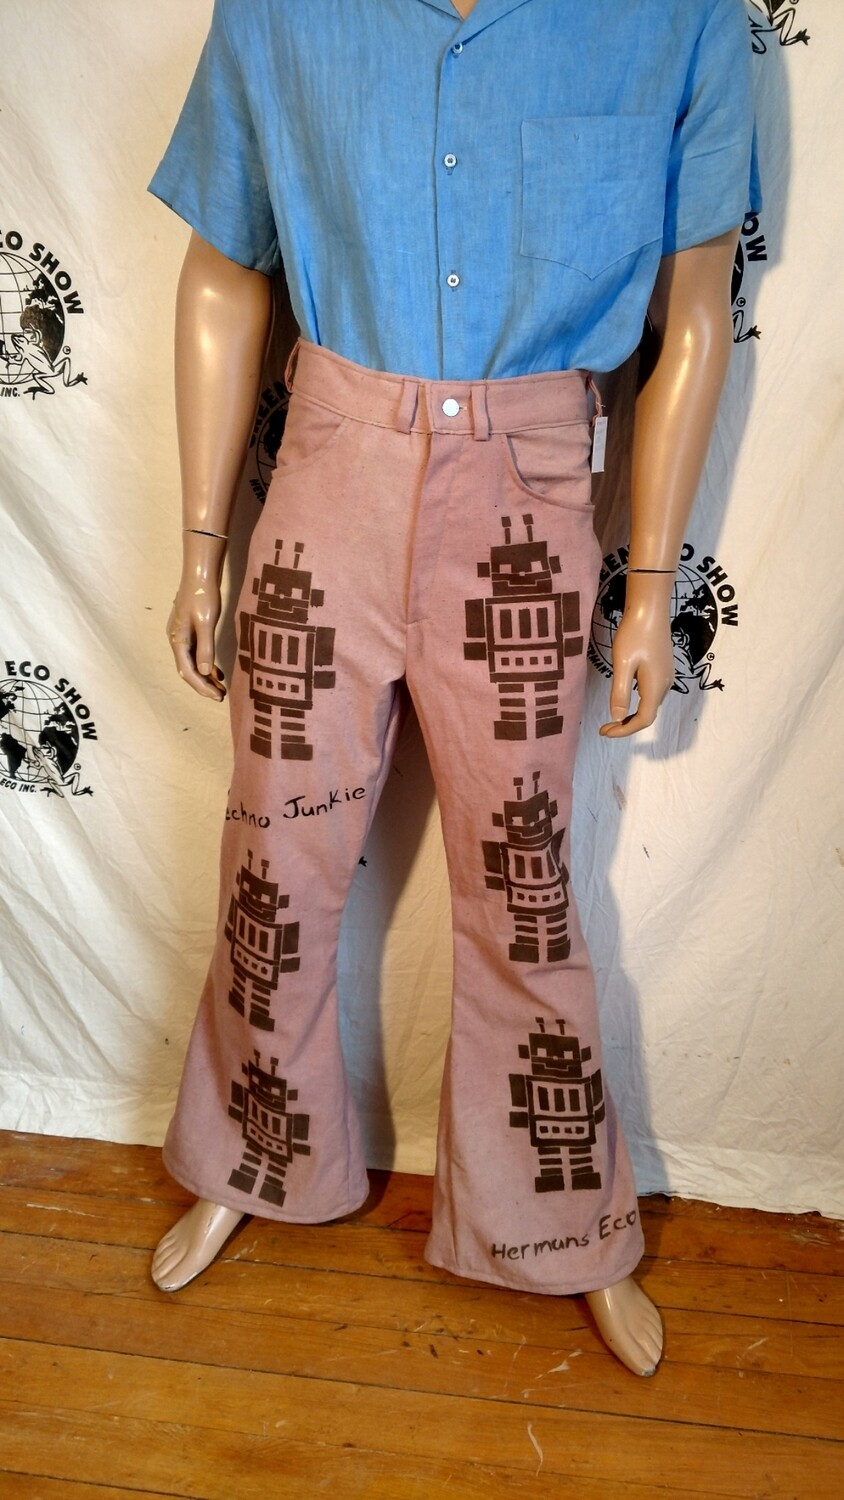 Robot jeans handyed 32 airbrushed Hermans Eco